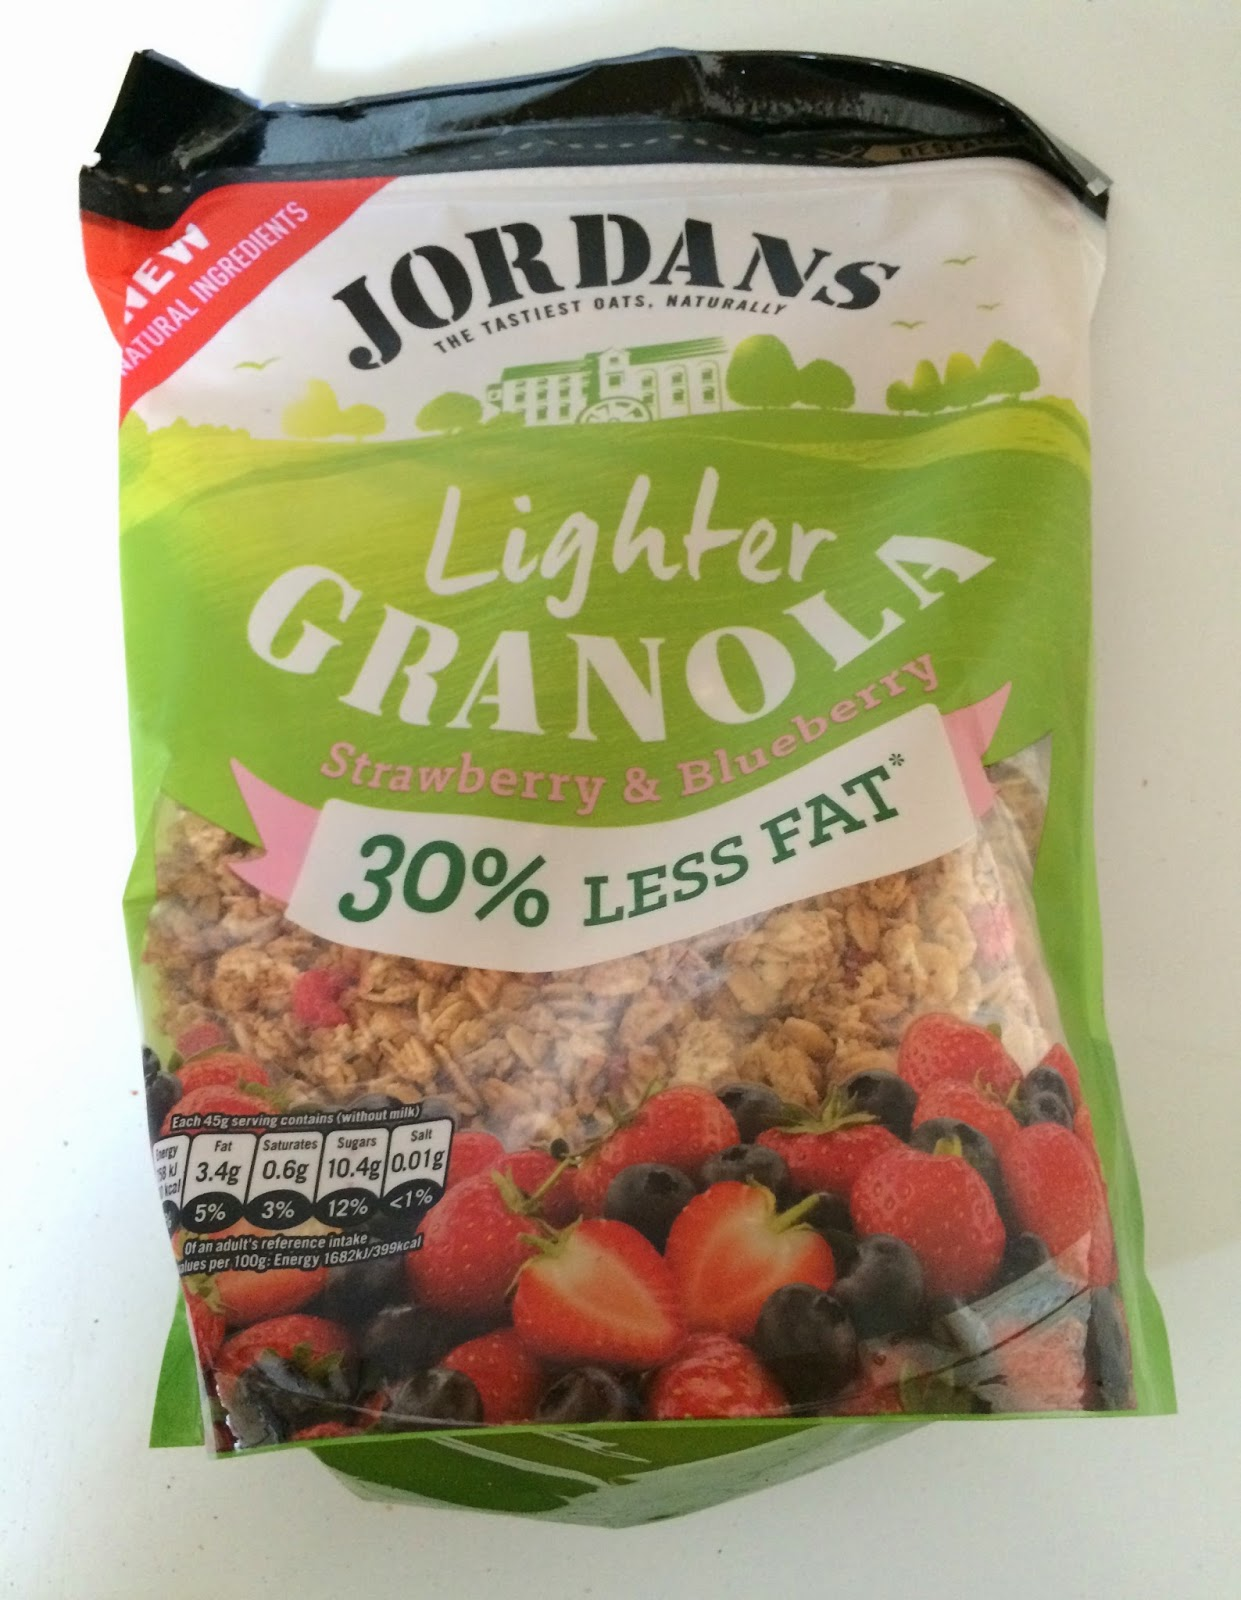 bag of Jordans light granola